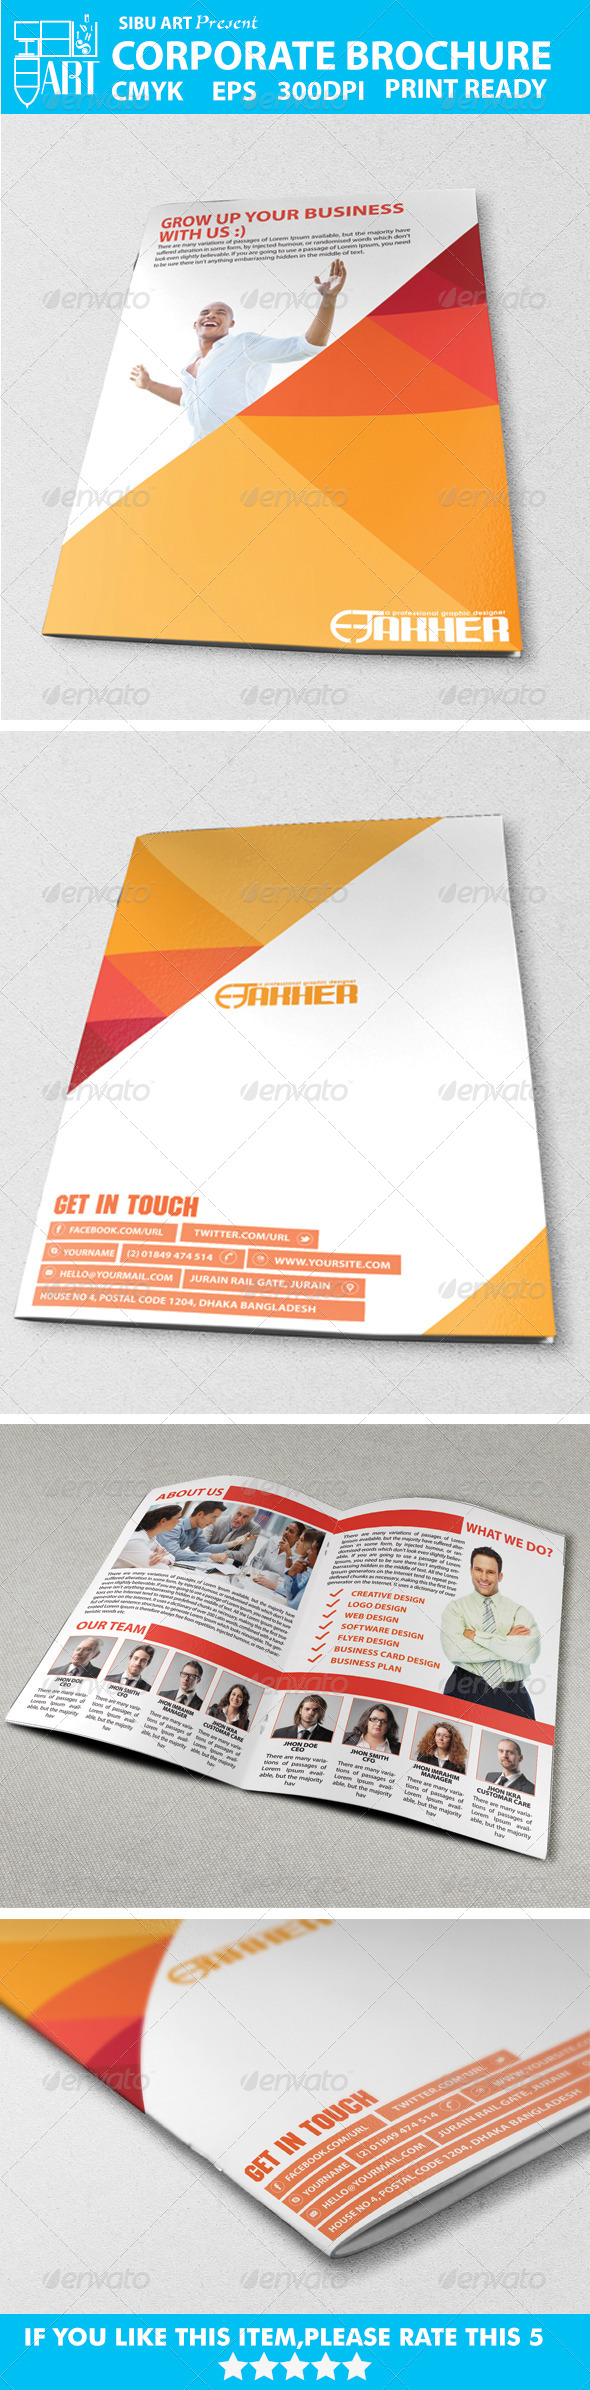 Corporate Brochures VOl-001